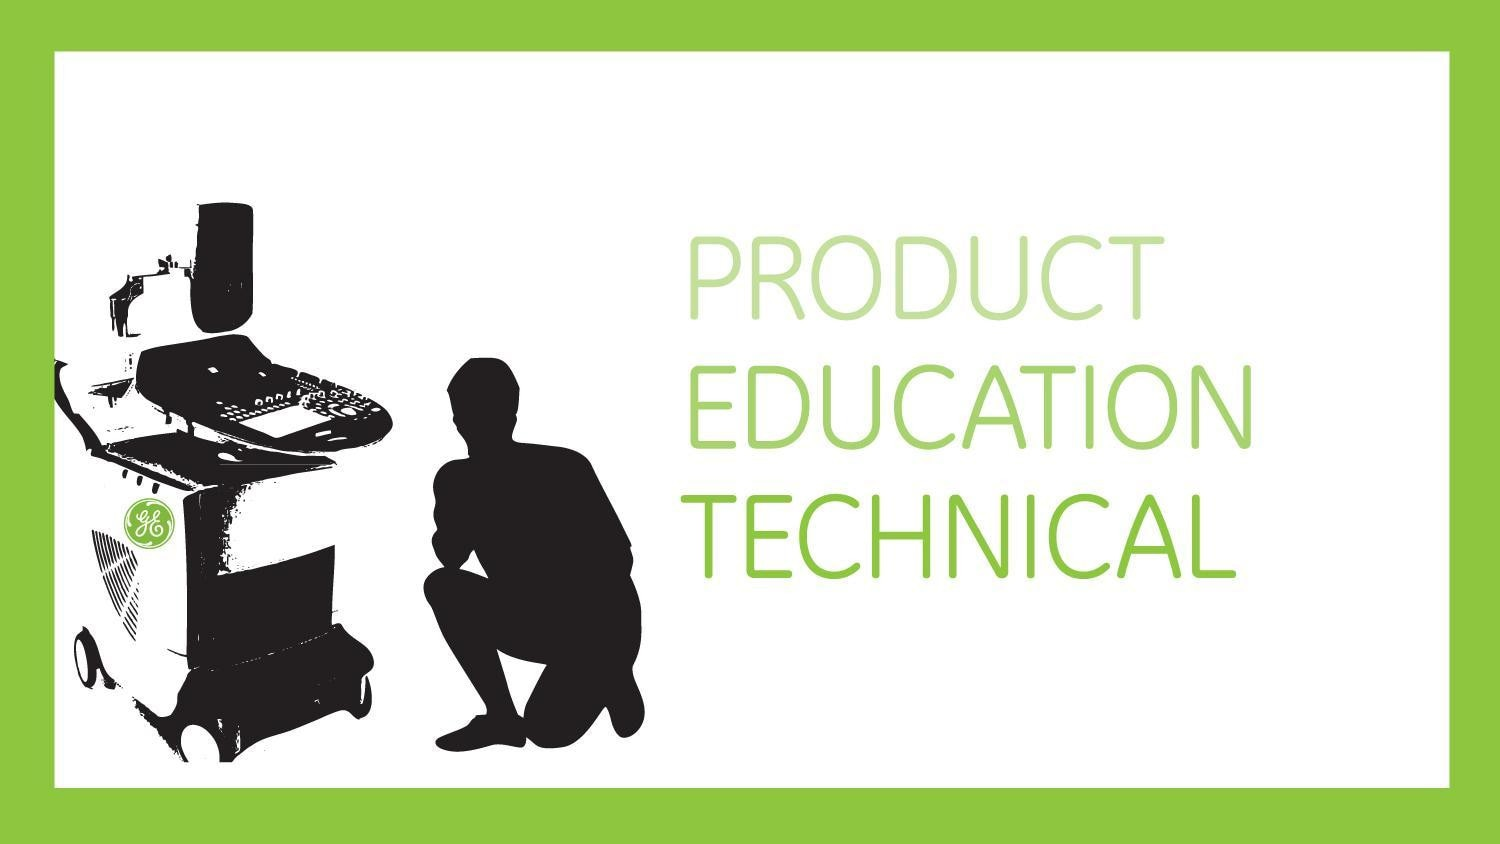 ry-landings-product-education-technical-gehc_education_product_edu_technical_spotlight.jpg